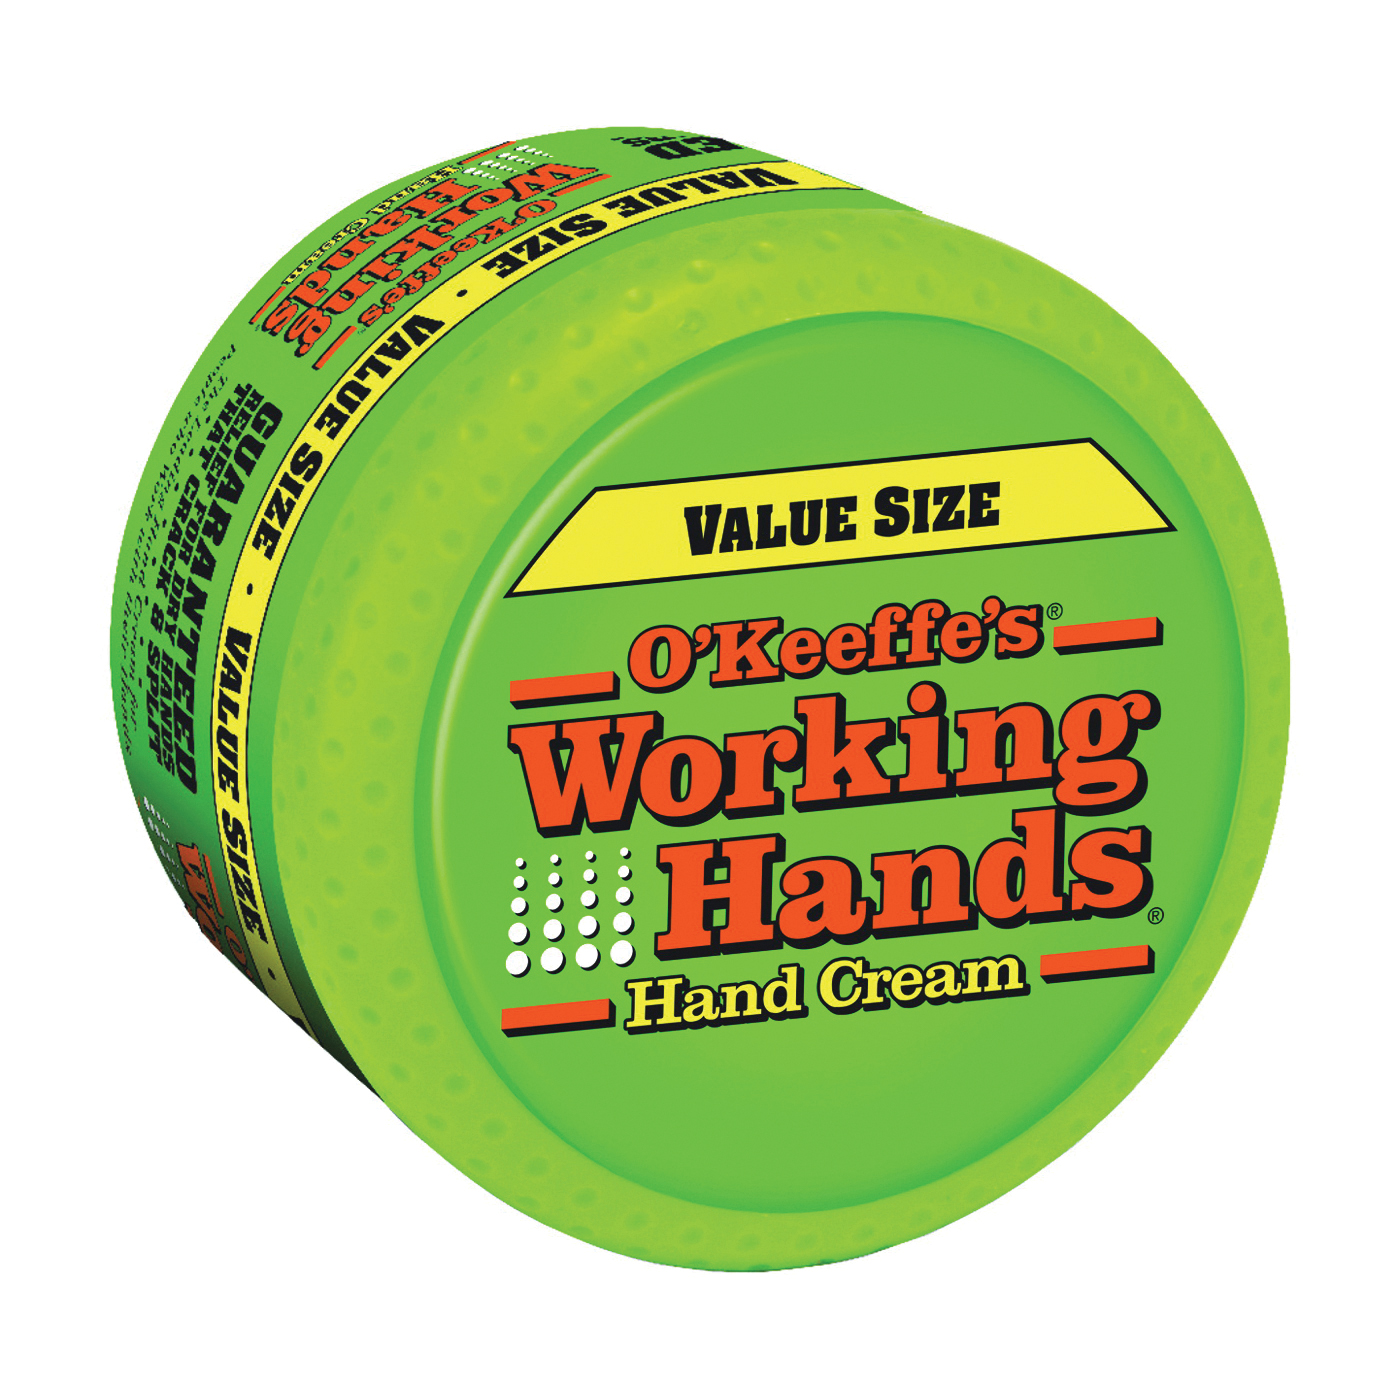 Picture of O'KEEFFE'S Working Hands K0680001 Hand Cream, Mild Stearic Acid, 6.8 oz Package, Jar